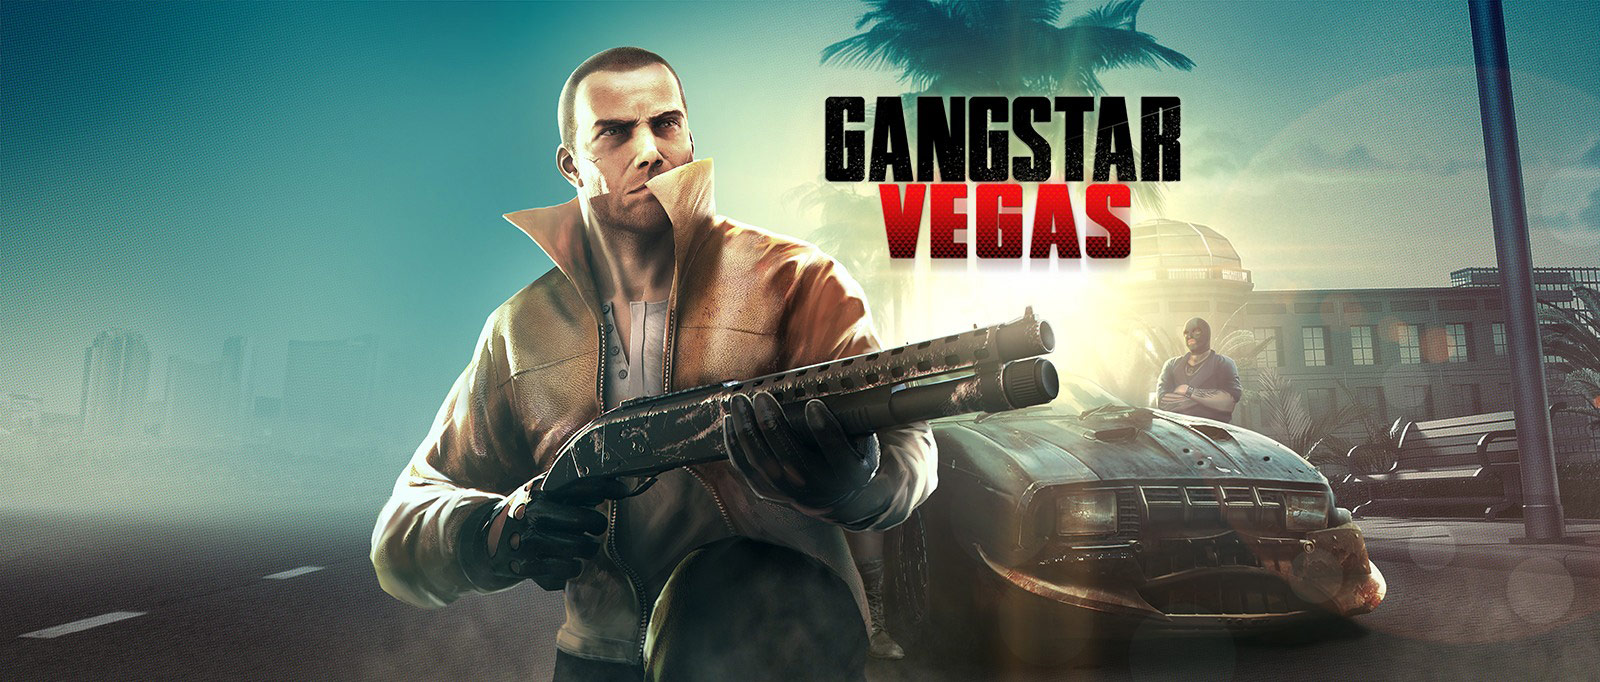 b38c345470559cd0dd37ca457335b55d - Gangstar Vegas MOD APK V5.1.1a  (Unlimited Money/VIP 10)